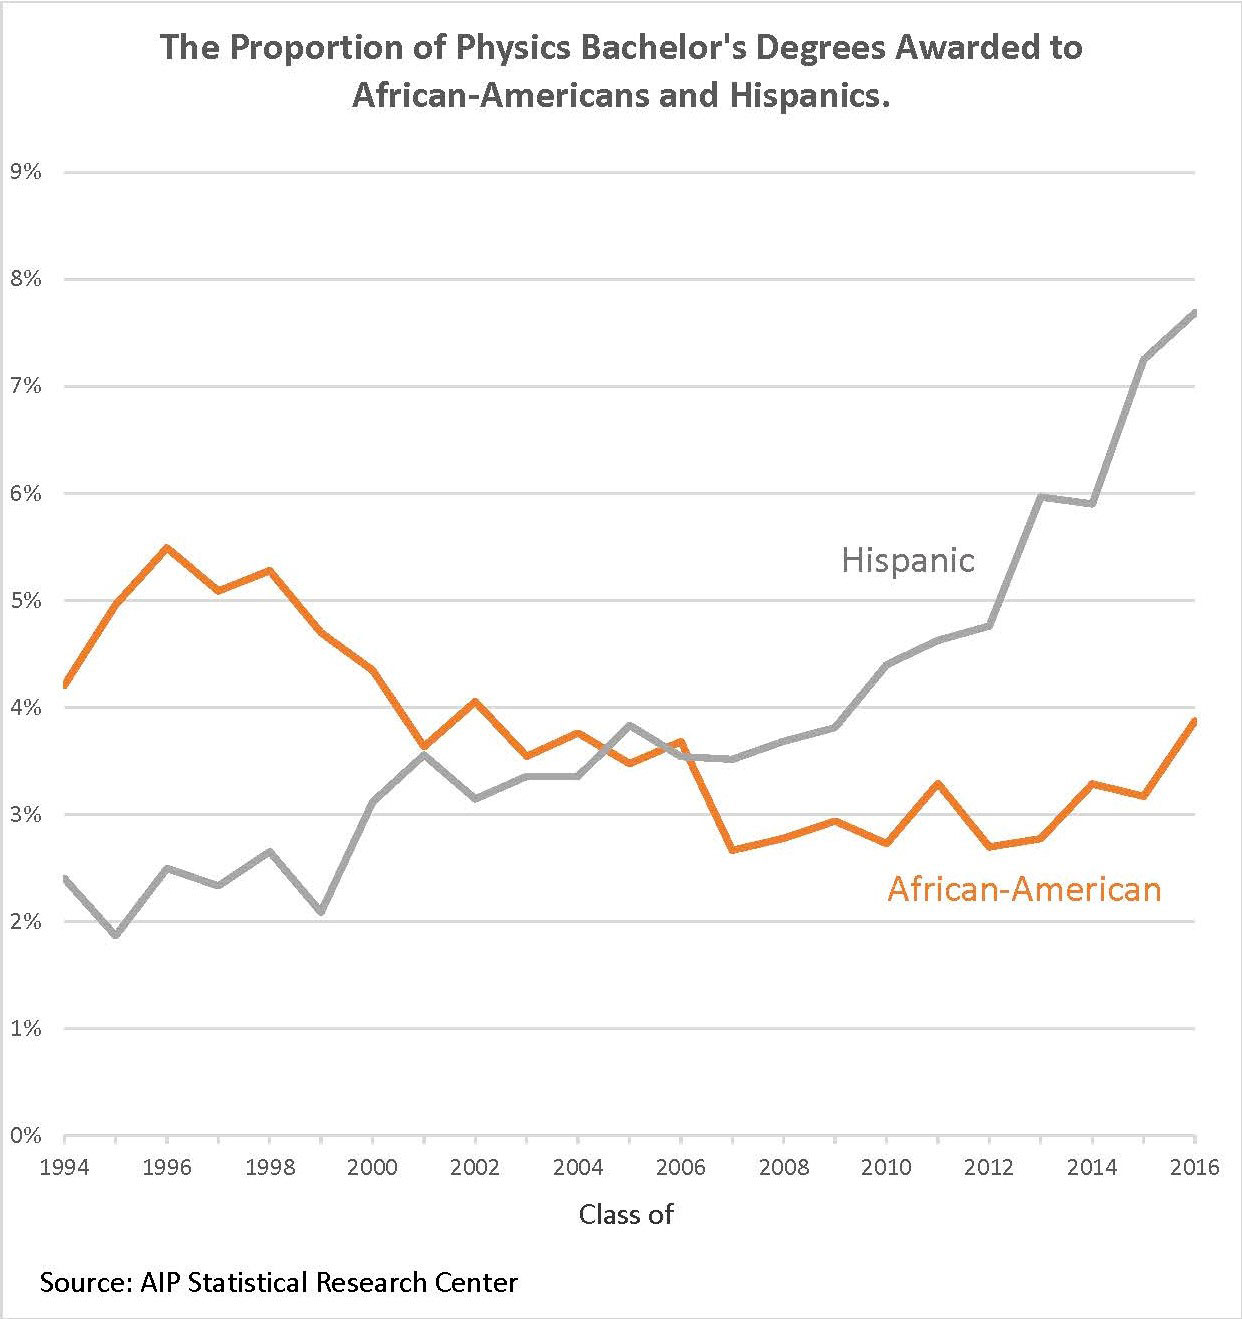 The Proportion of Physics Bachelor's Degrees Awarded to African-Americans and Hispanics